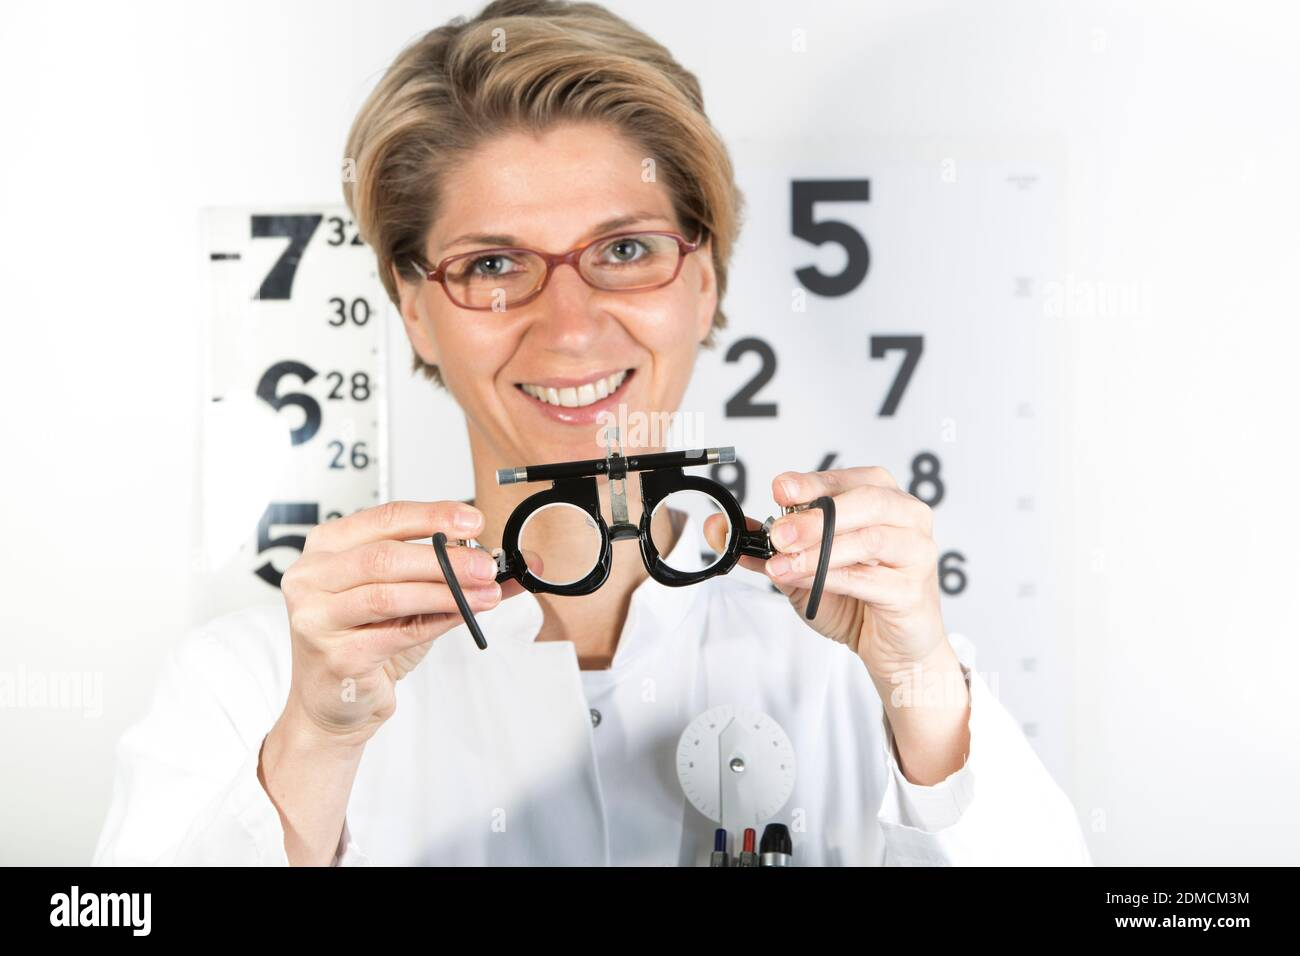 Young eye doctor W34 with testing frame on the eye chart, Germany, Europe Stock Photo